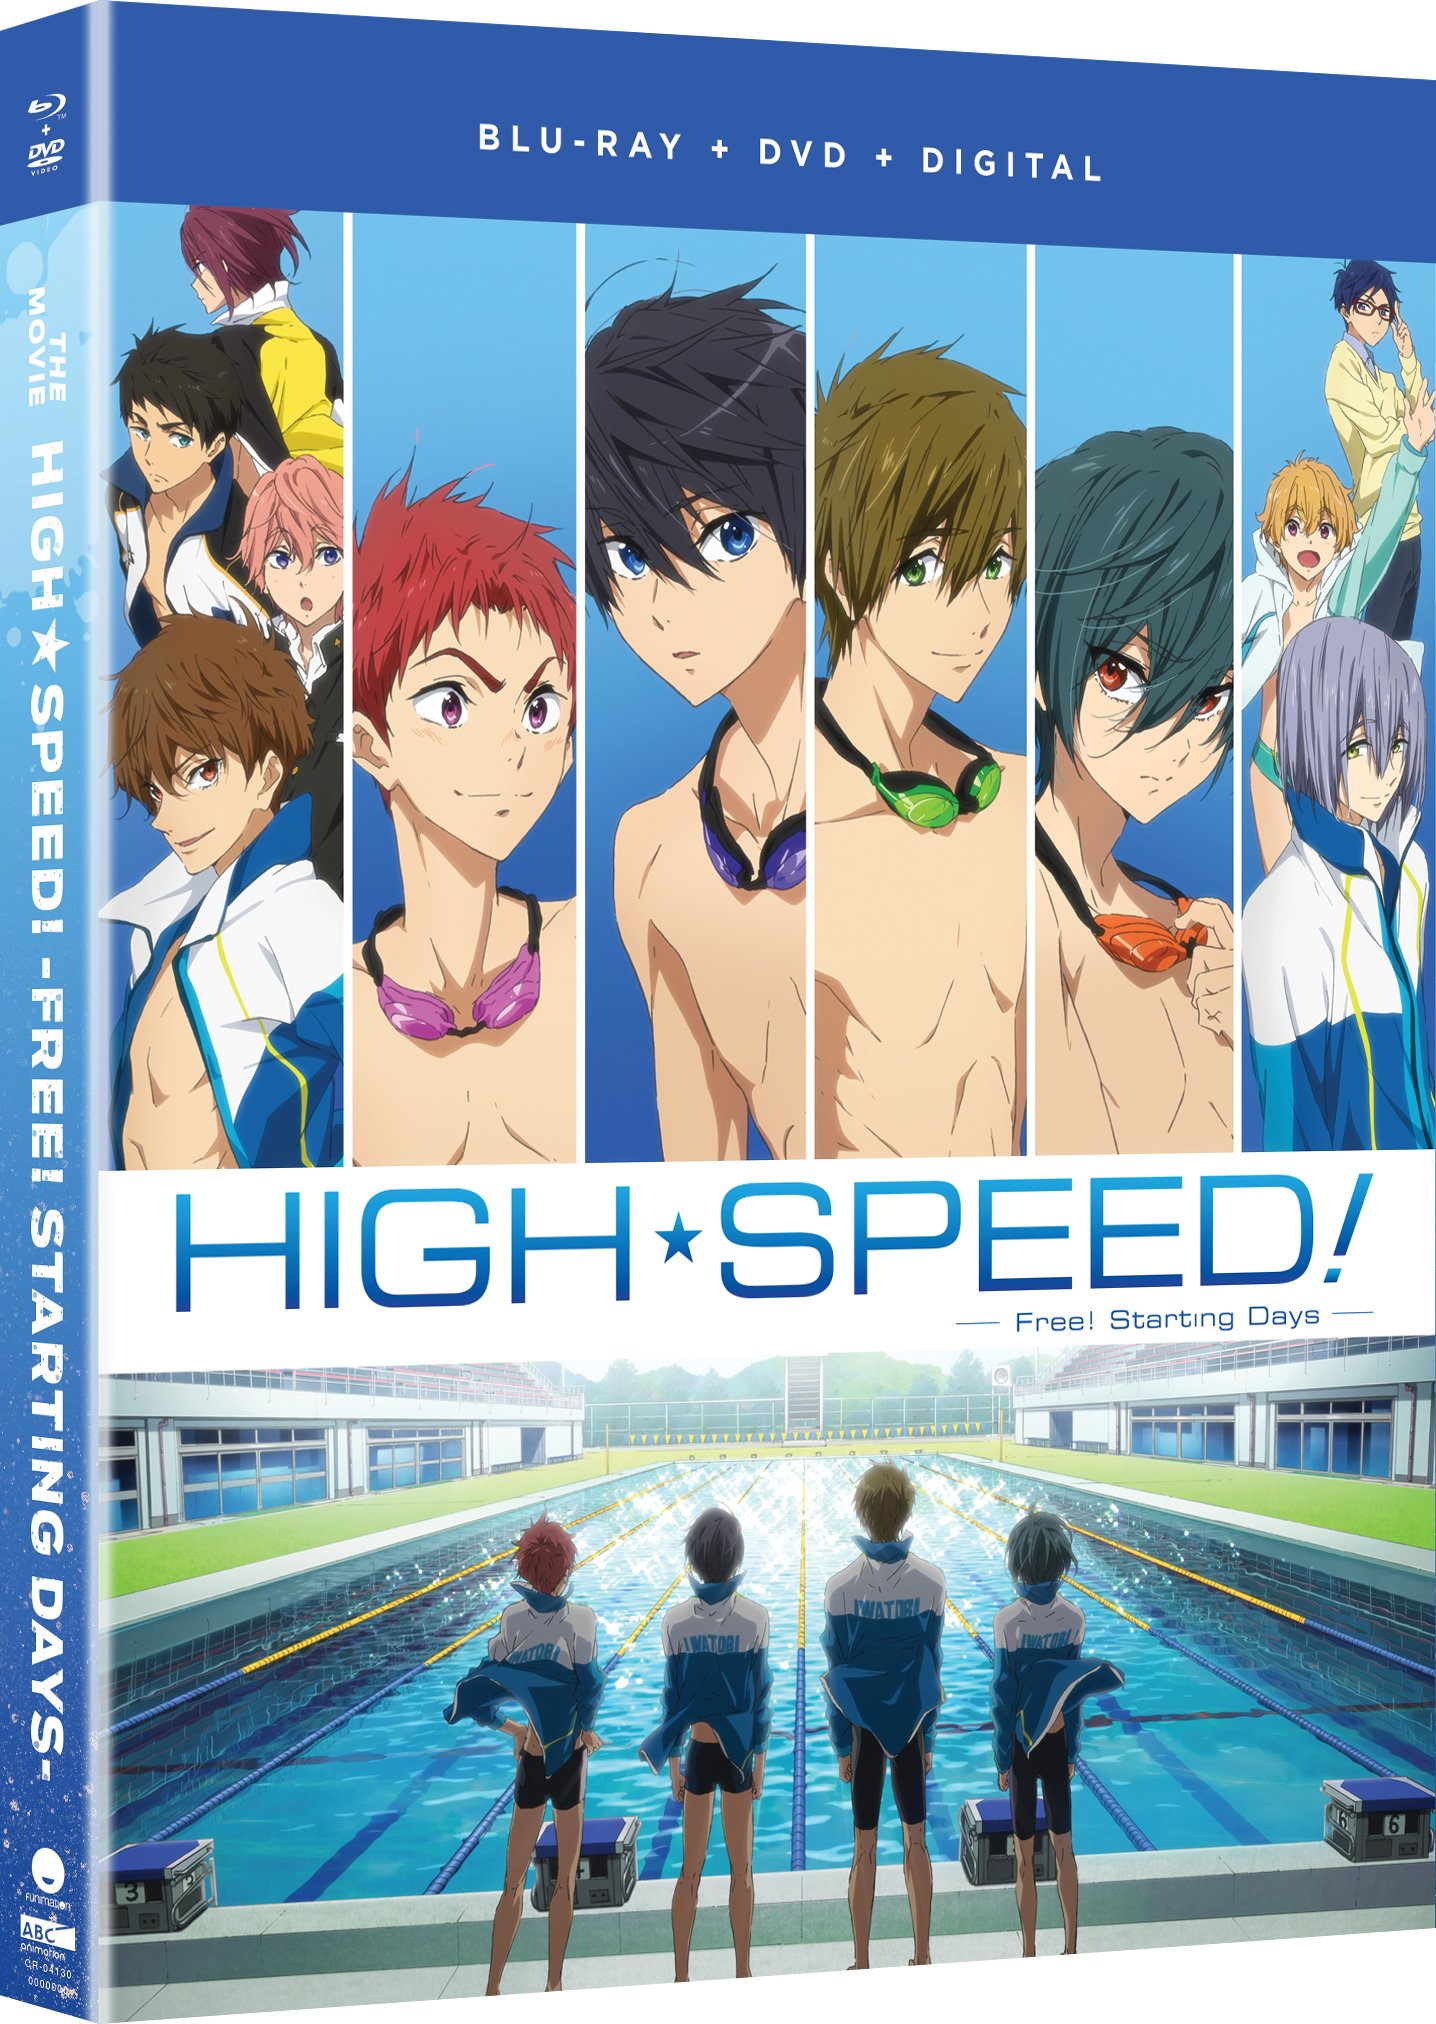 Blu-ray : Free!: High Speed! - Free! Starting Days - The Movie (With DVD, Standard Edition, Uncut, Subtitled, Snap Case)